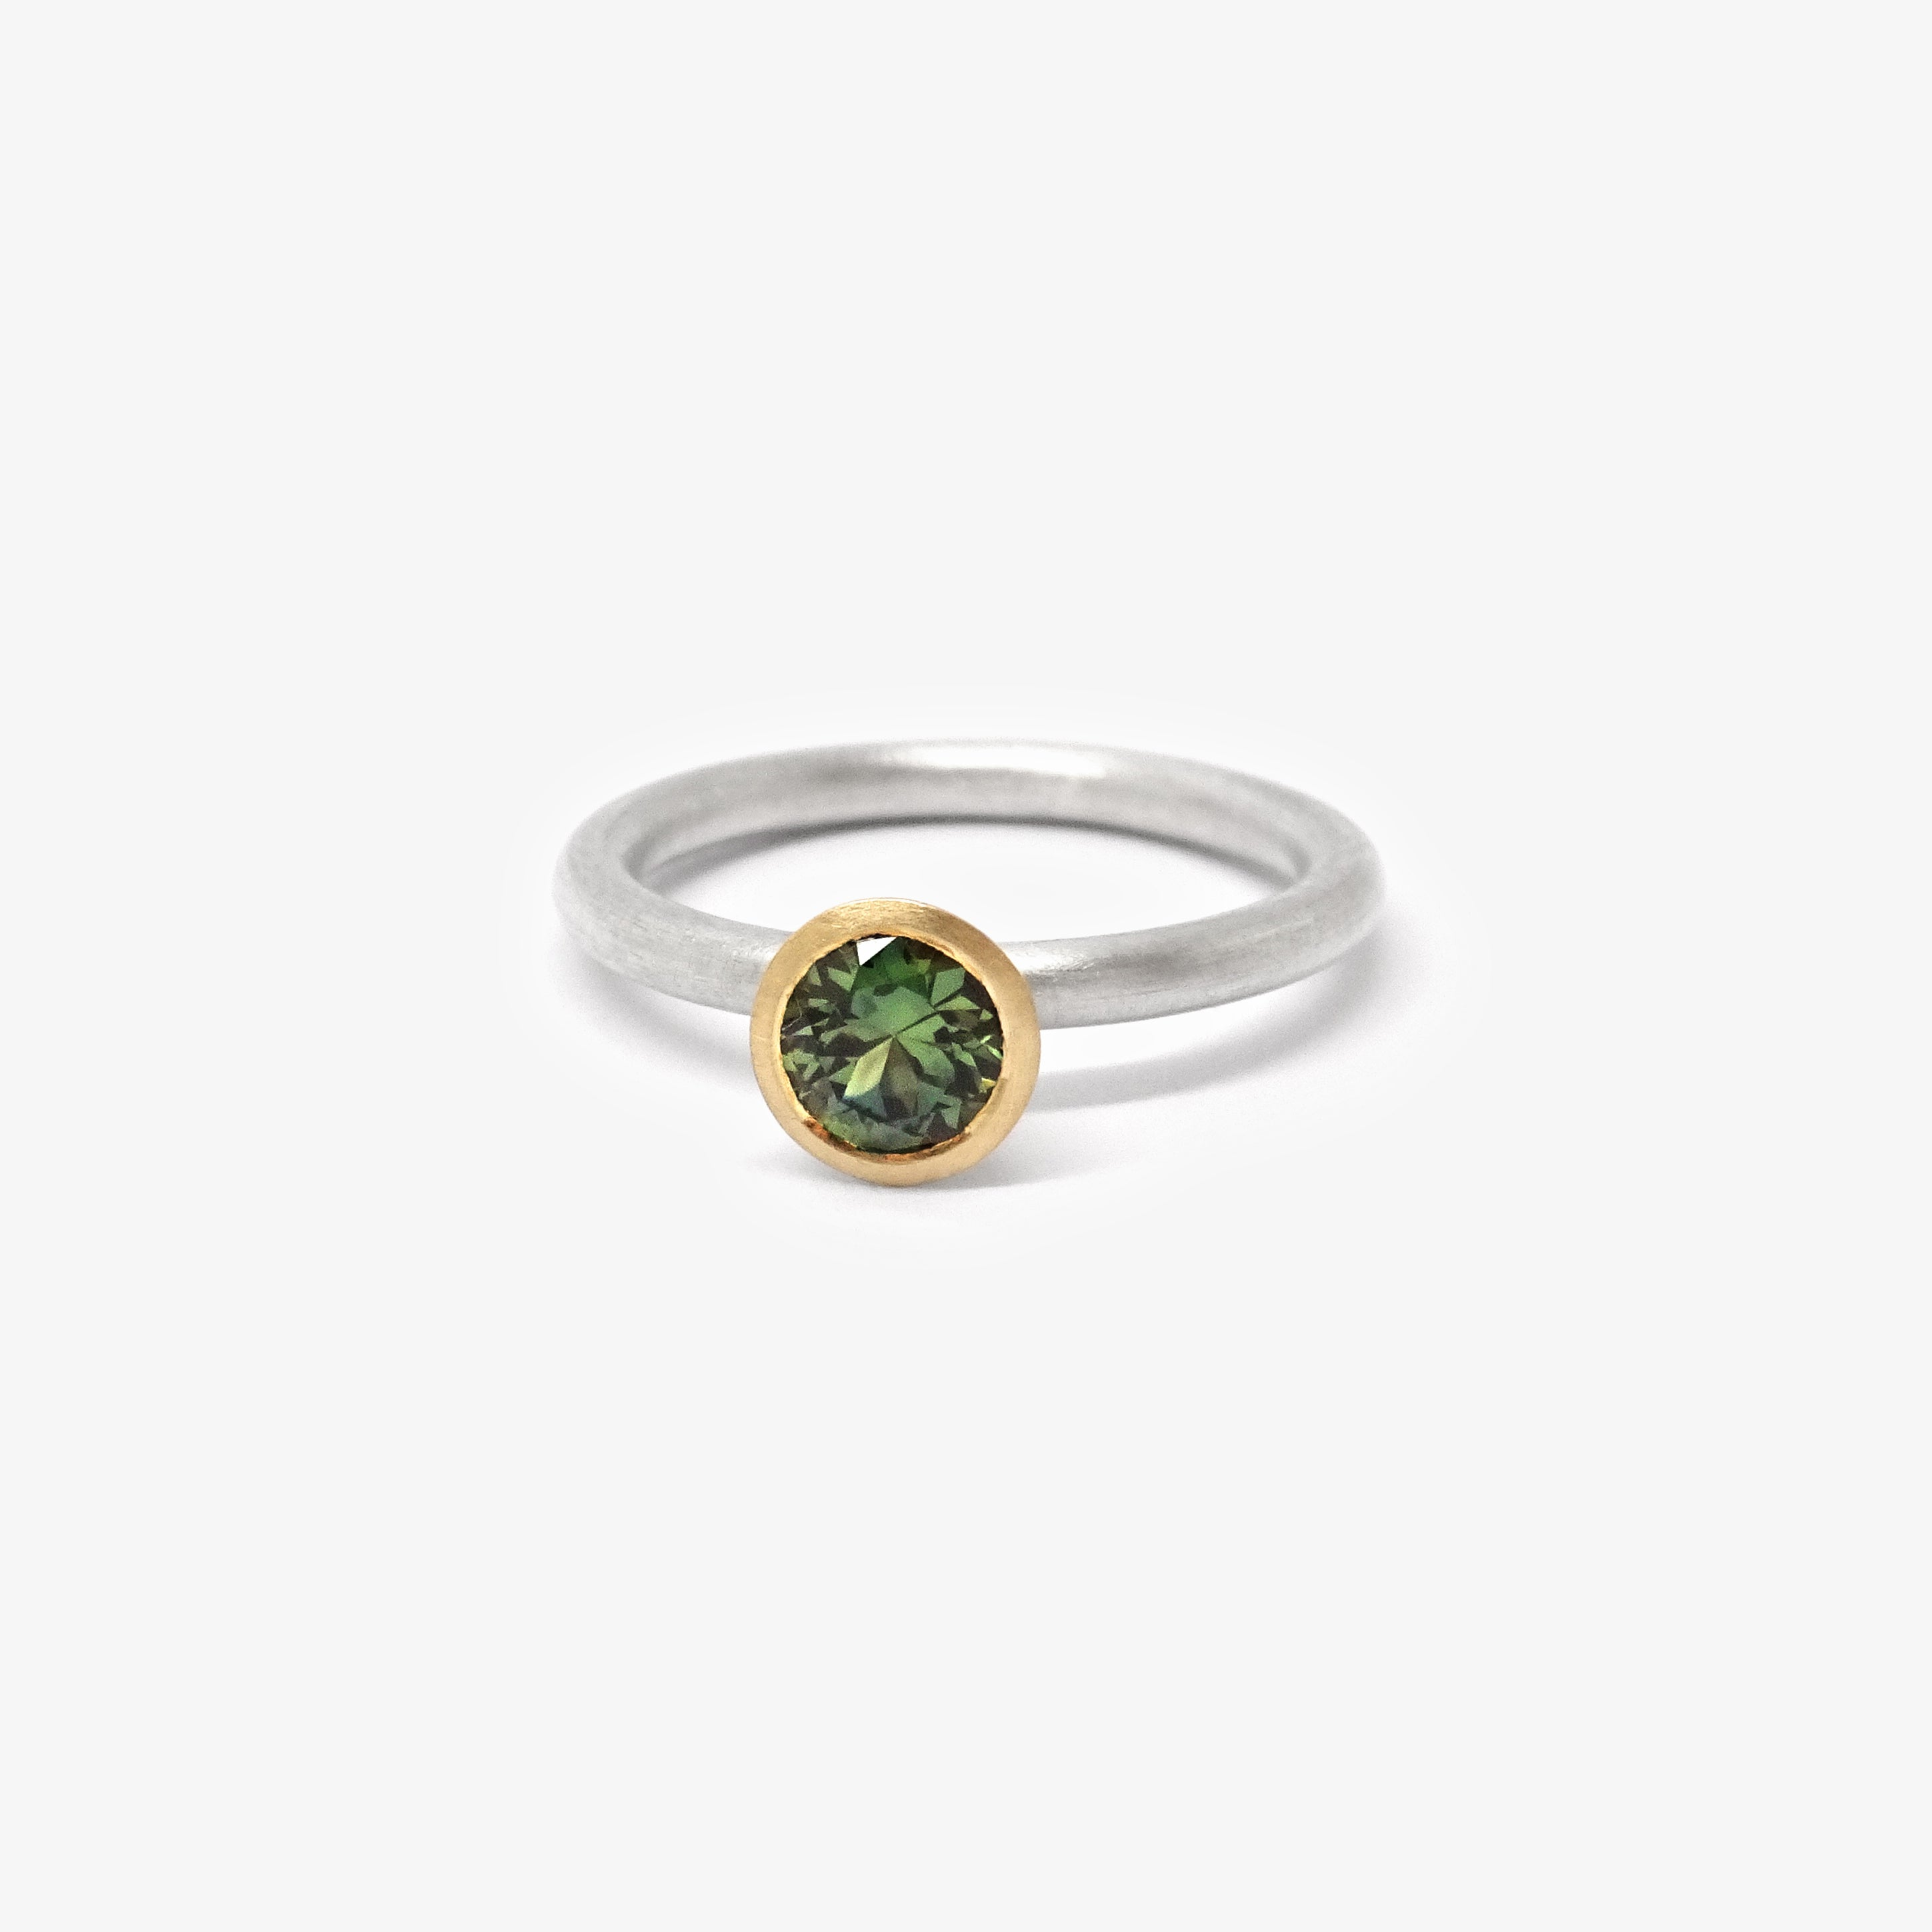 GREEN SAPPHIRE RING - 5MM ROUND